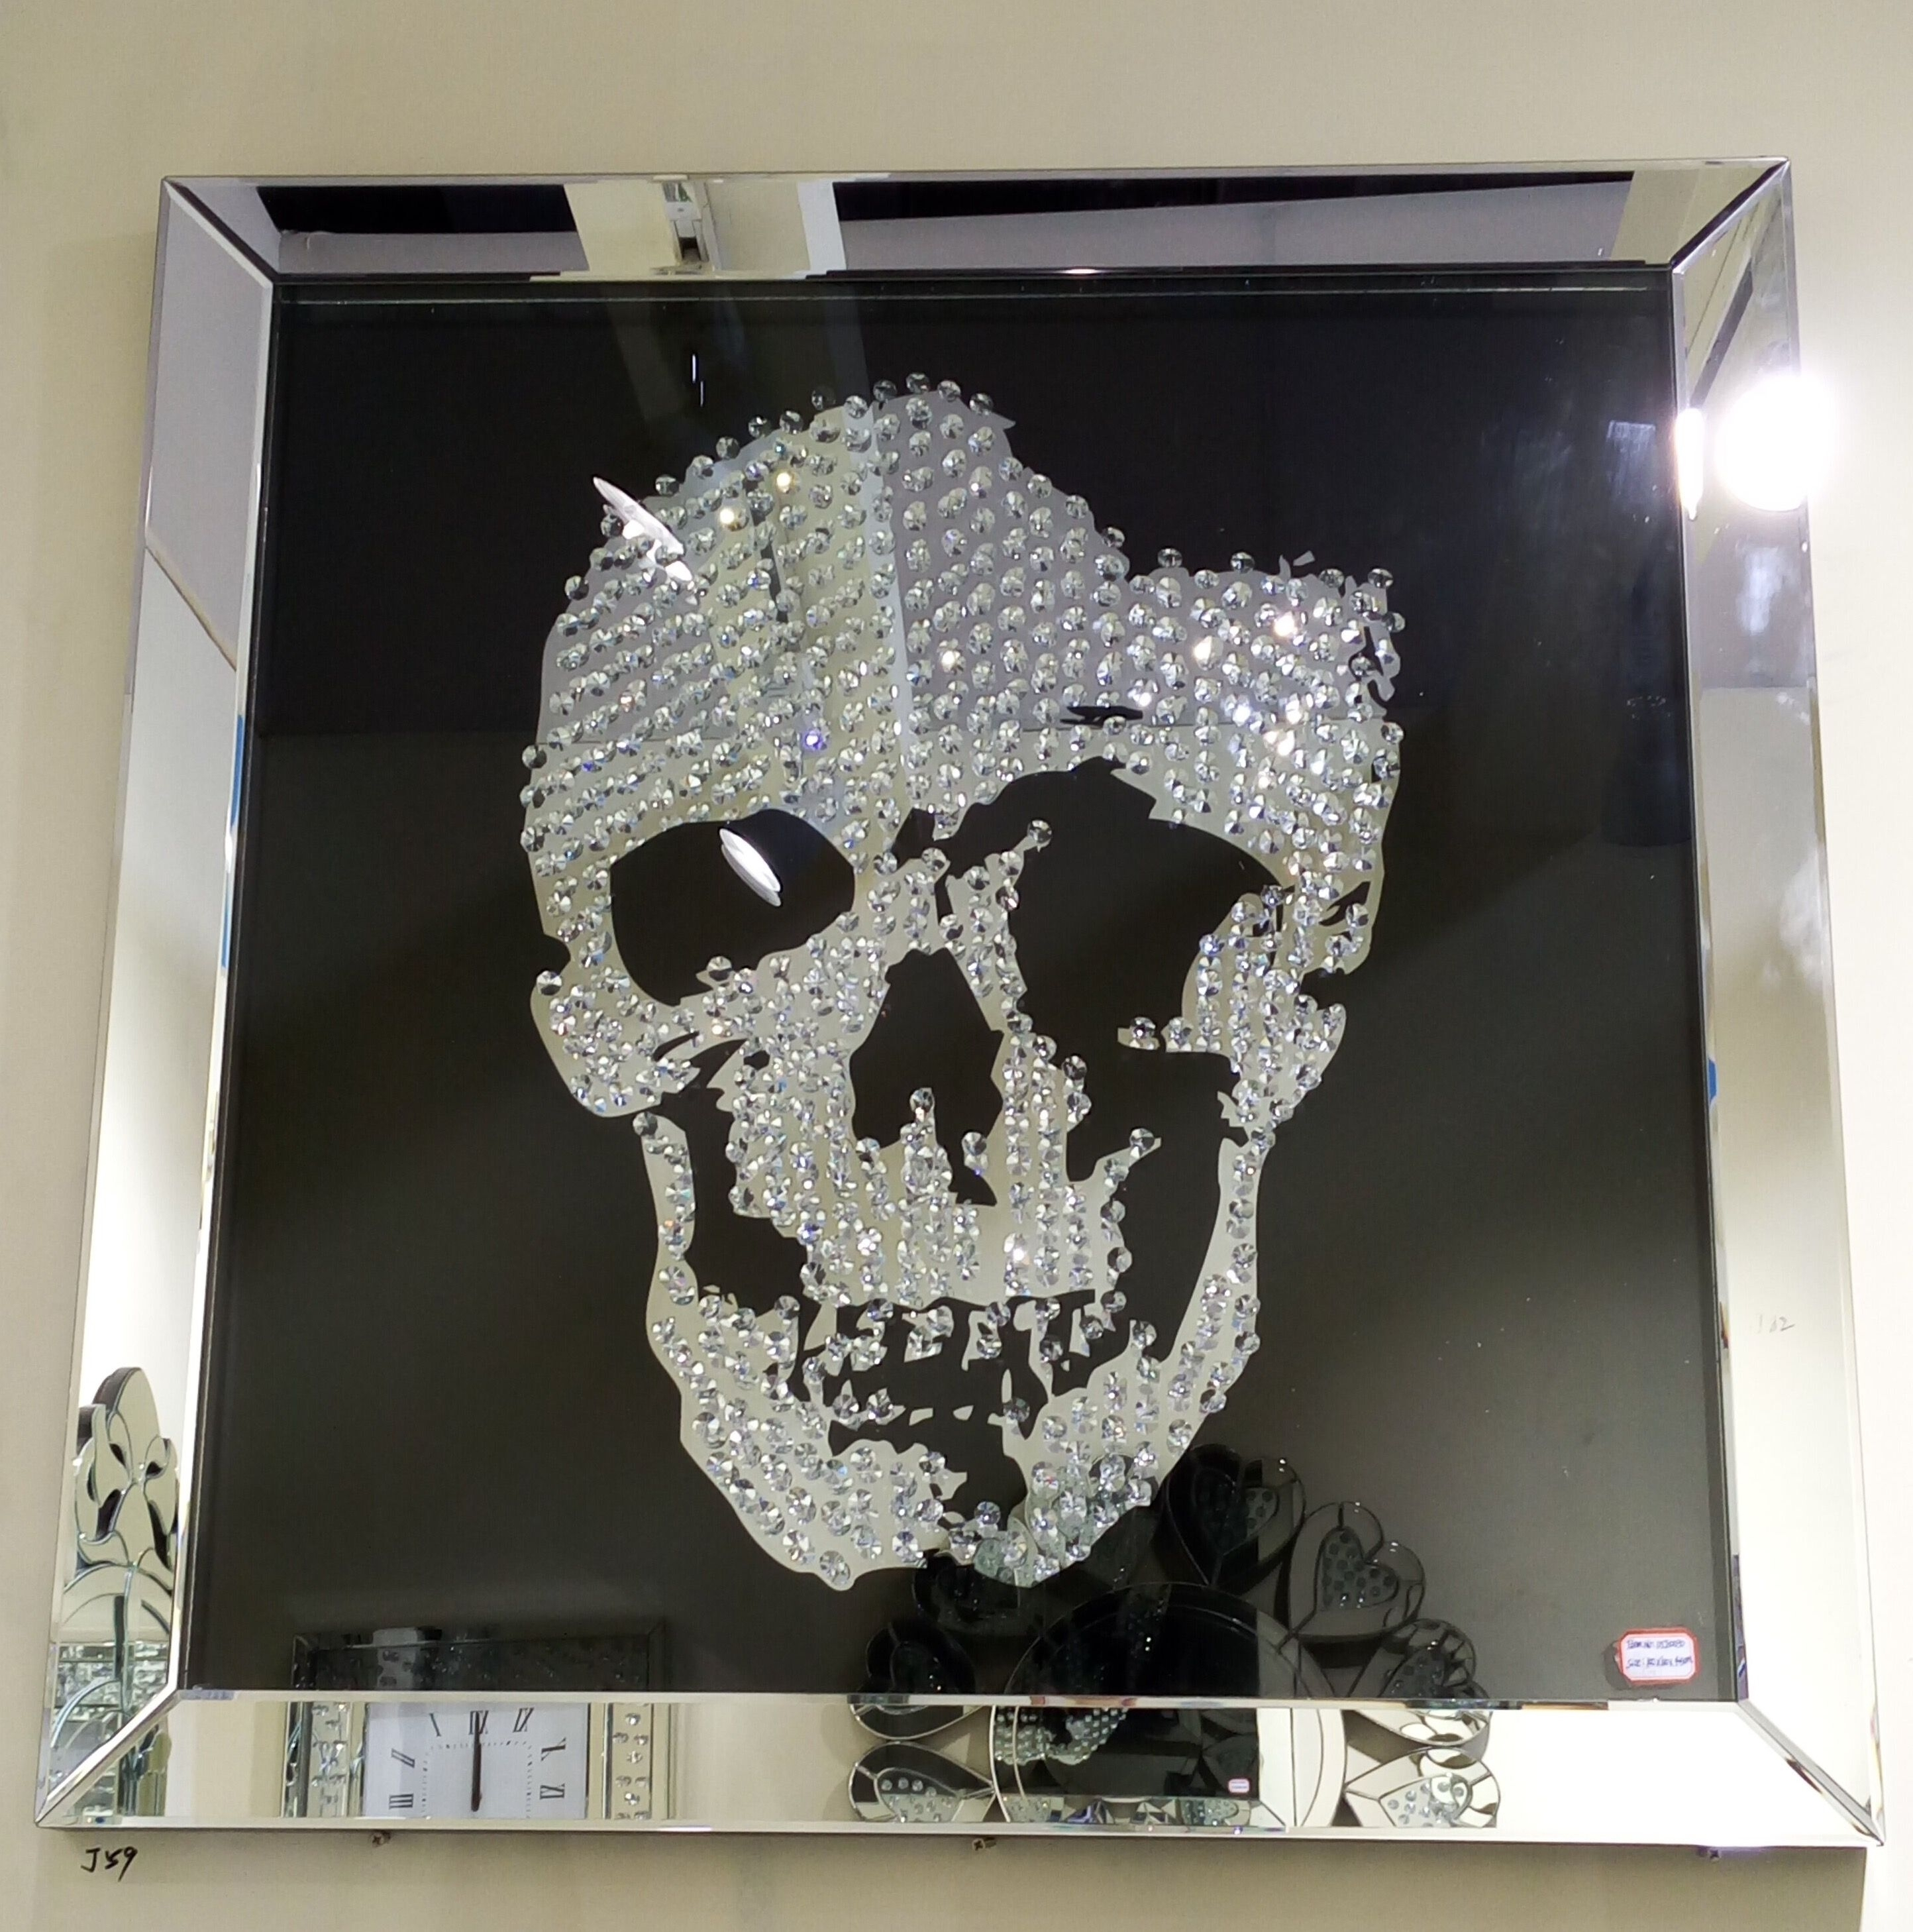 Swarovski Crystal Skull Wall Art With A Silver Mirrored Frame And With Regard To Mirrored Wall Art (View 15 of 20)